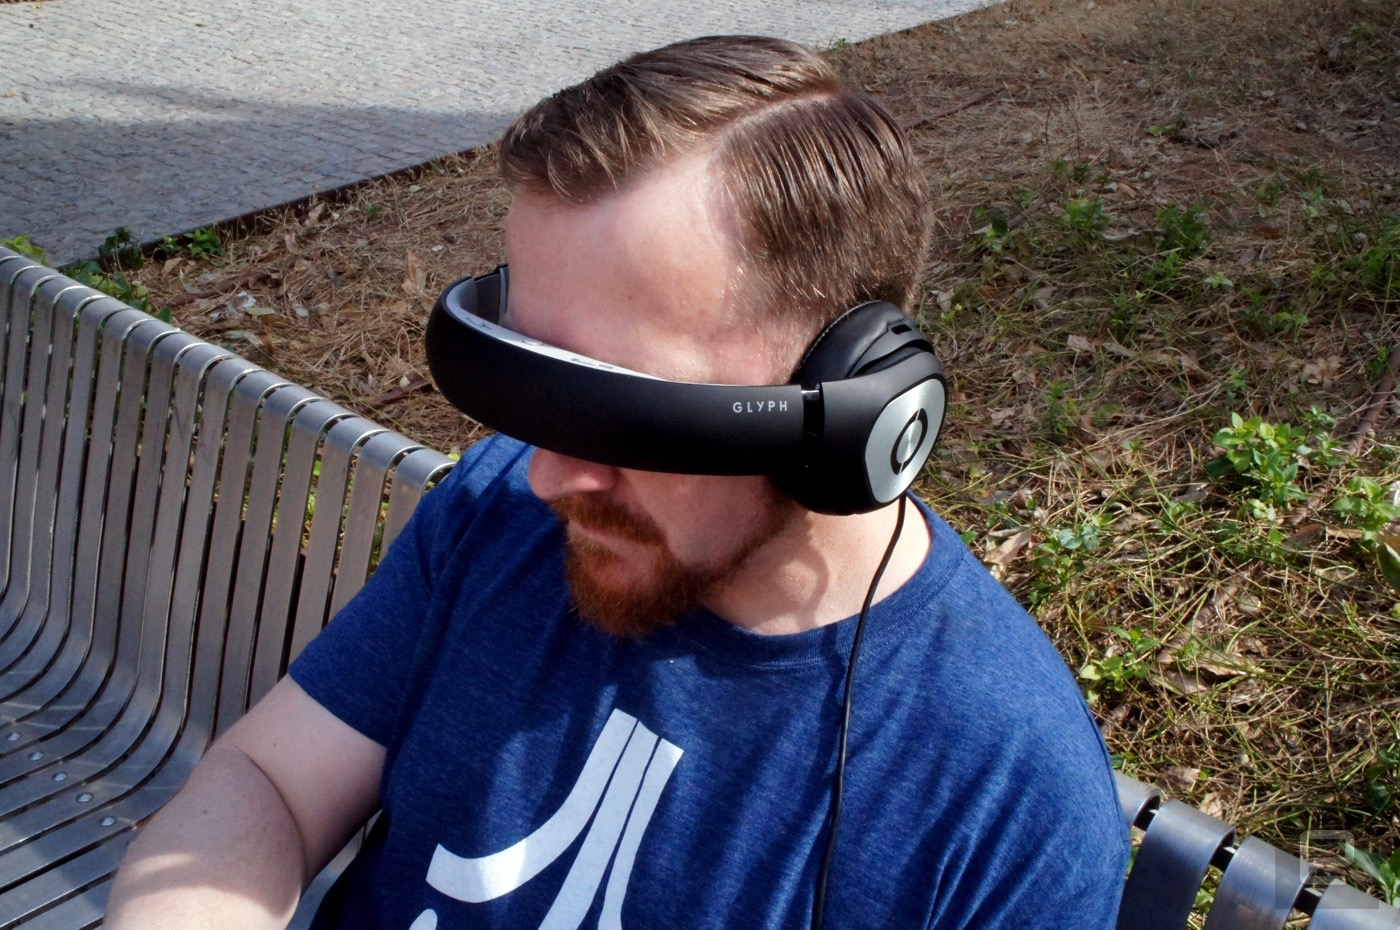 Avegant Glyph review: A wearable cinema for serious movie fans